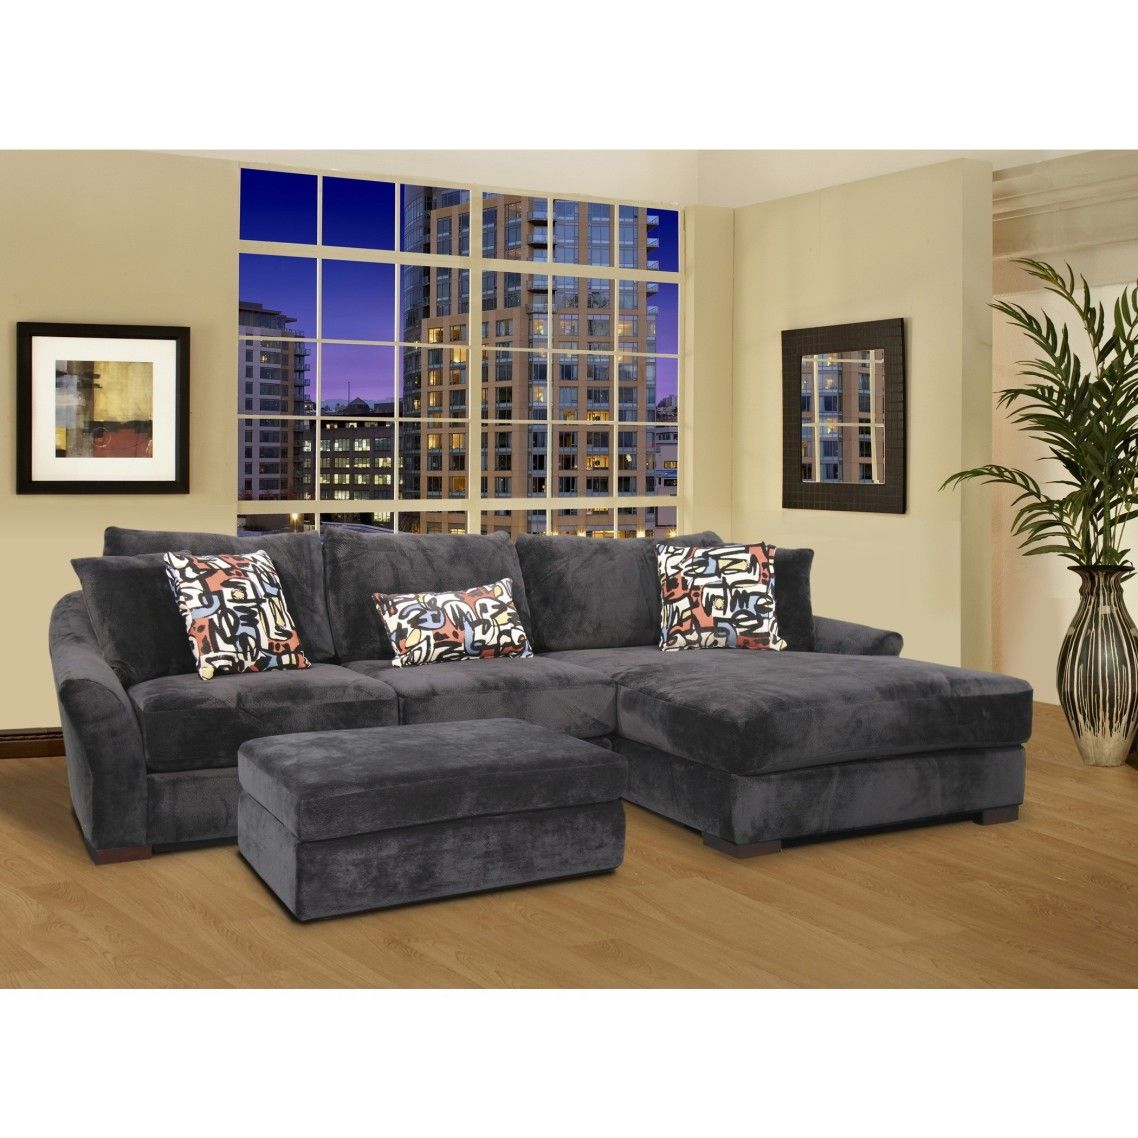 Sofa Beds Gray Velvet Oversized Sectional Sleeper Sofa With Left Chaise Combined With Rectangle Ottoman Storage Coffee Table